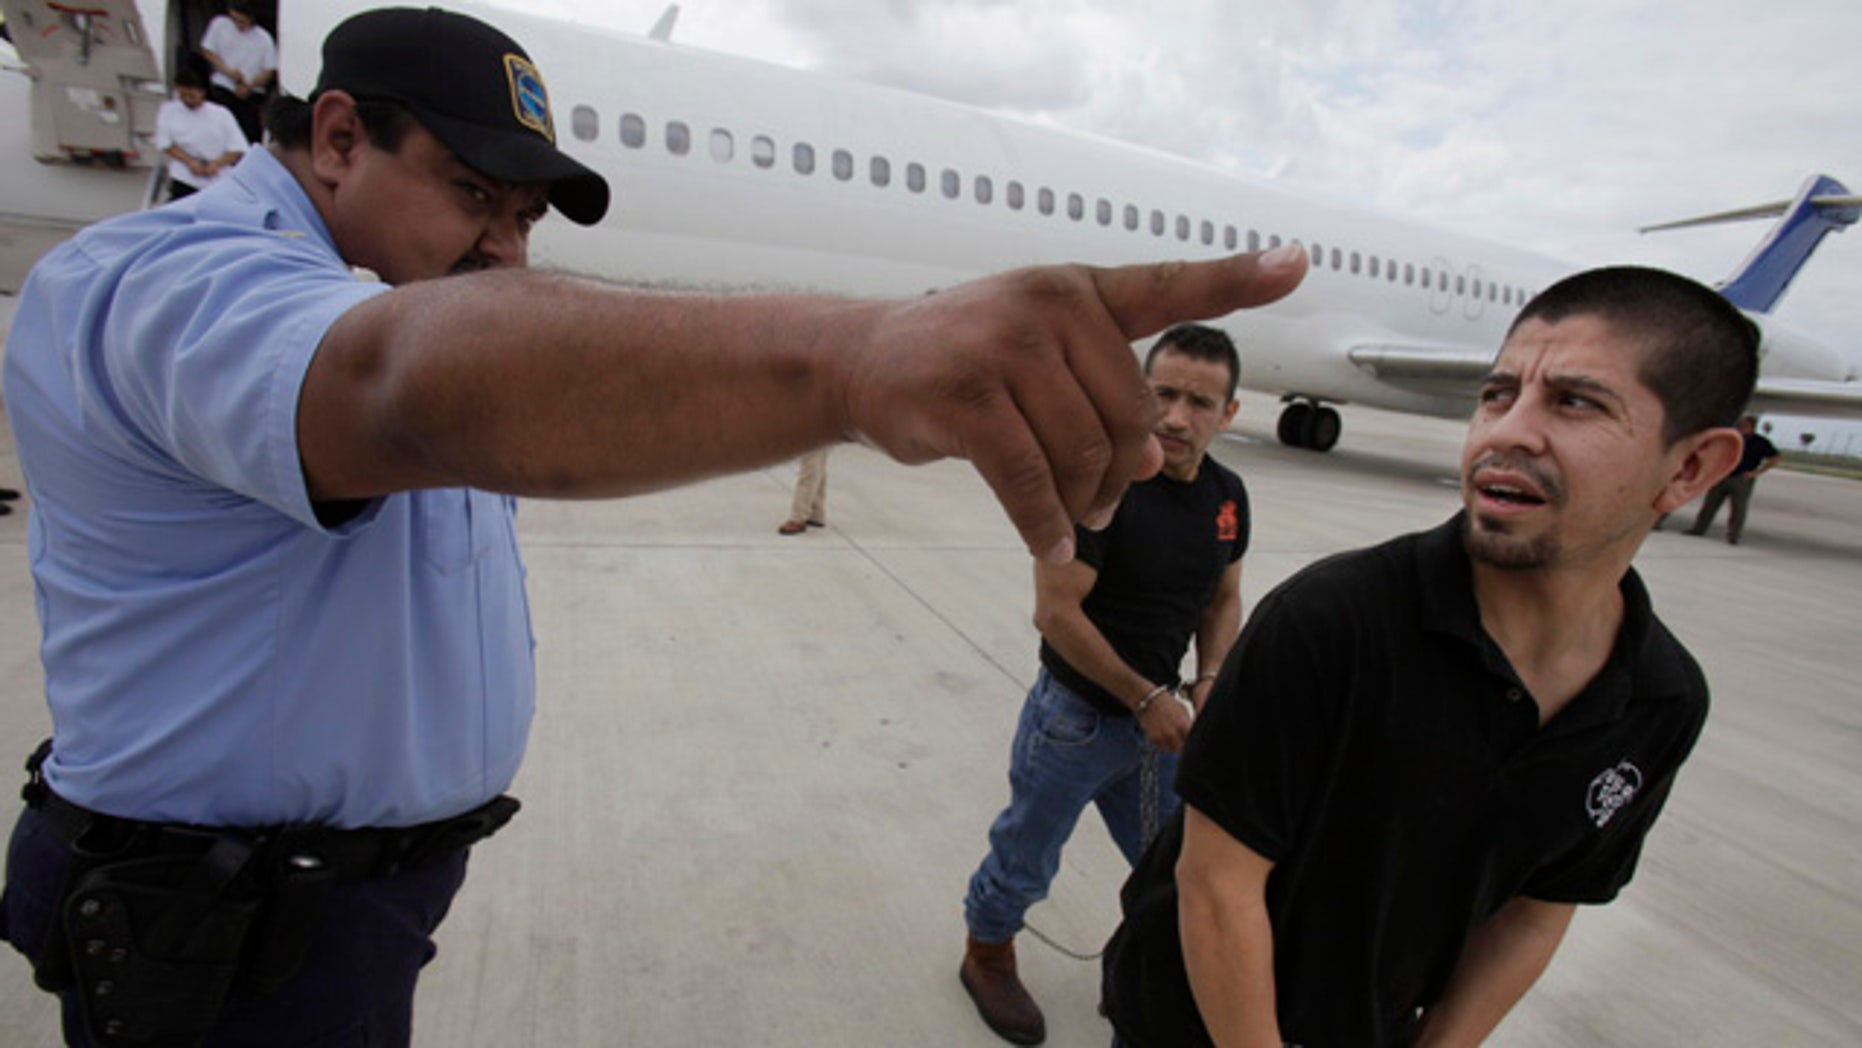 Shackled Mexican immigrants are directed by a guard to a waiting deportation by the U.S. Immigration and Customs Enforcement in Harlingen, Texas.